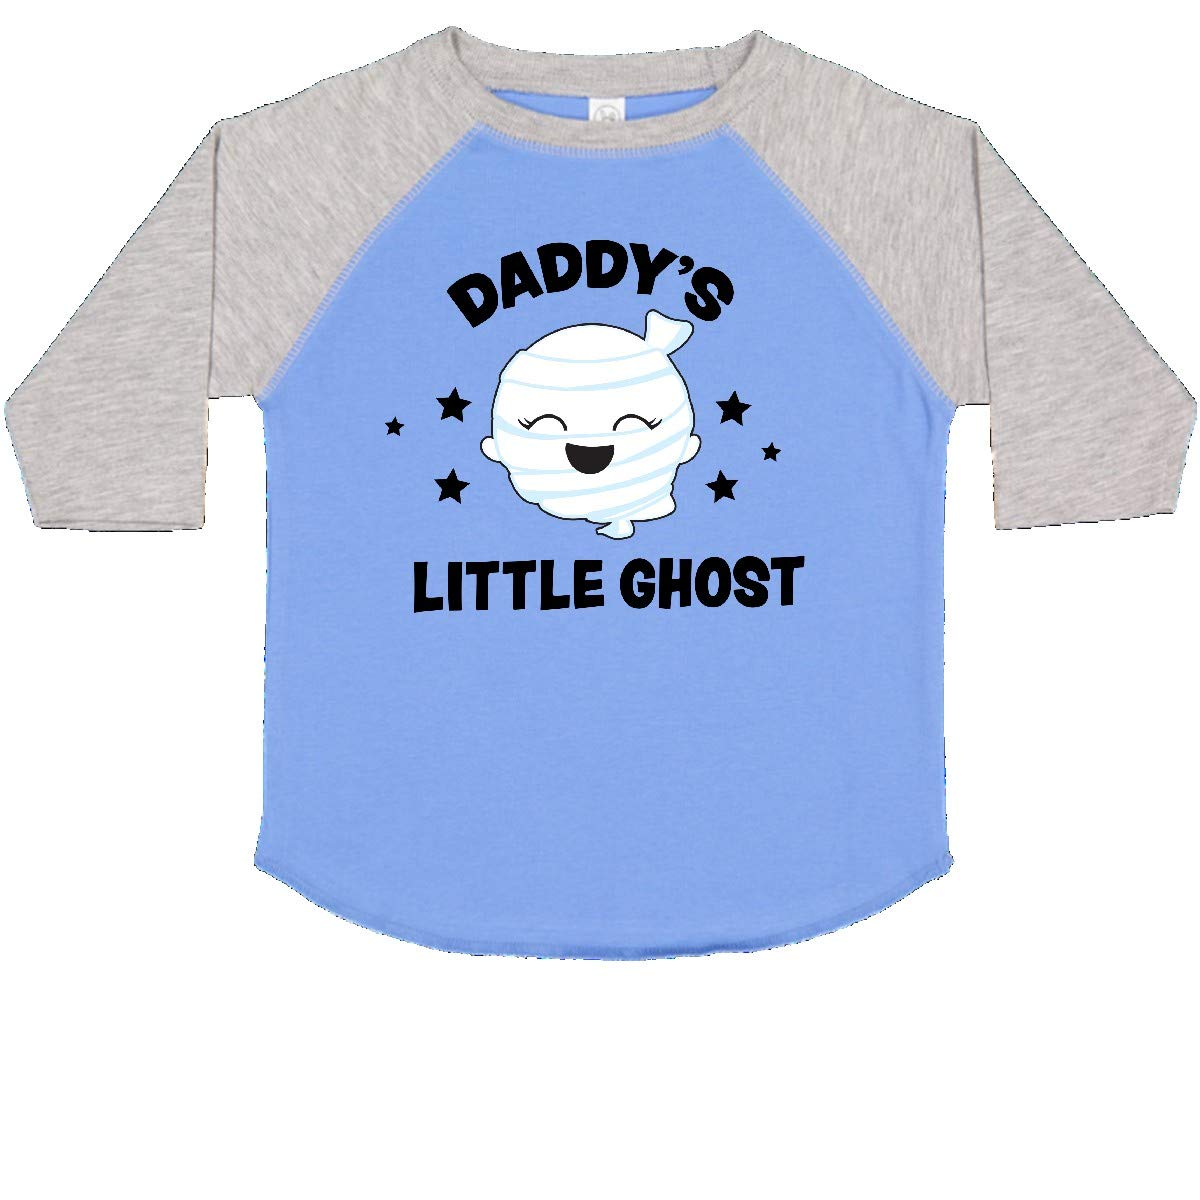 inktastic Cute Daddys Little Ghost with Stars Toddler T-Shirt